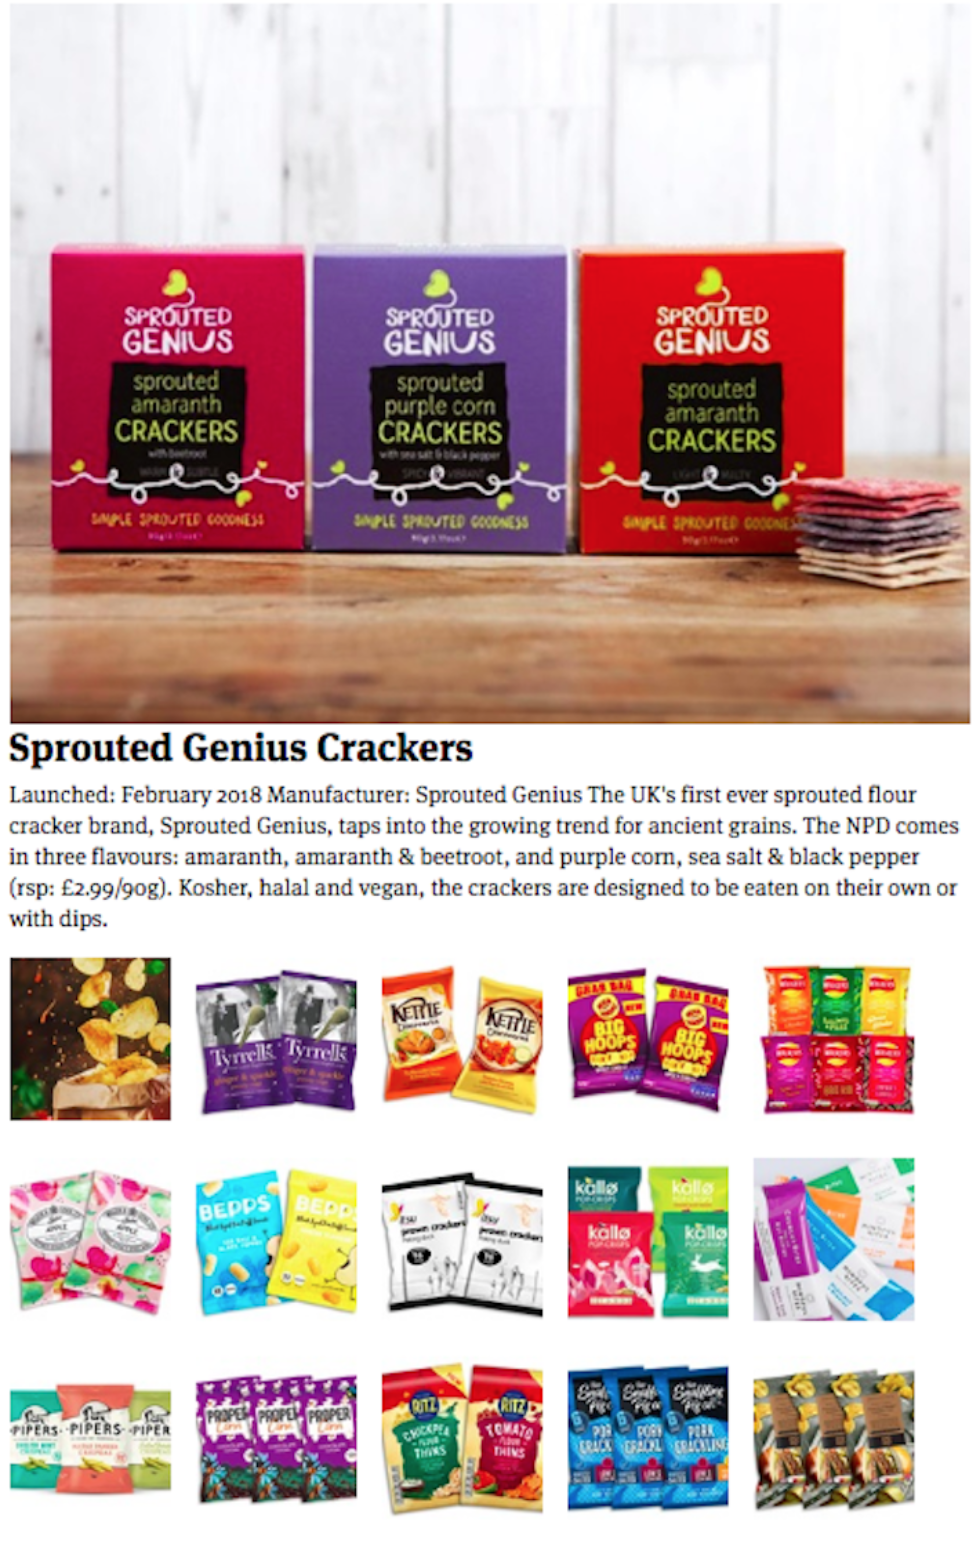 Coverage for  in The Grocer, 2018-05-03